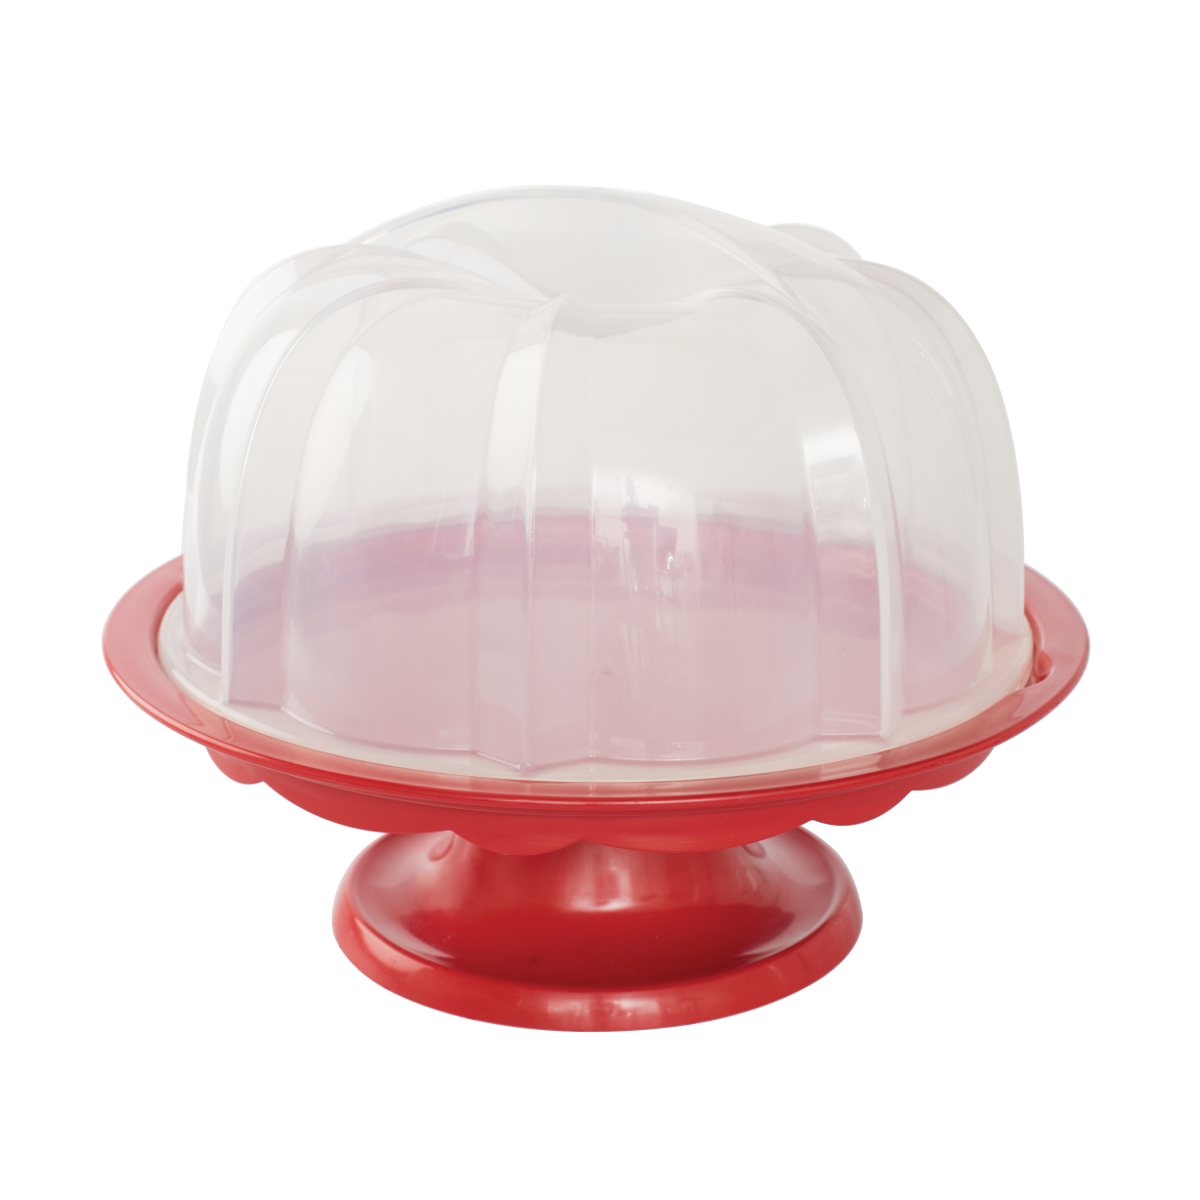 Nordic Ware Red 12.75 Inch Bundt Cake Stand with Dome Lid